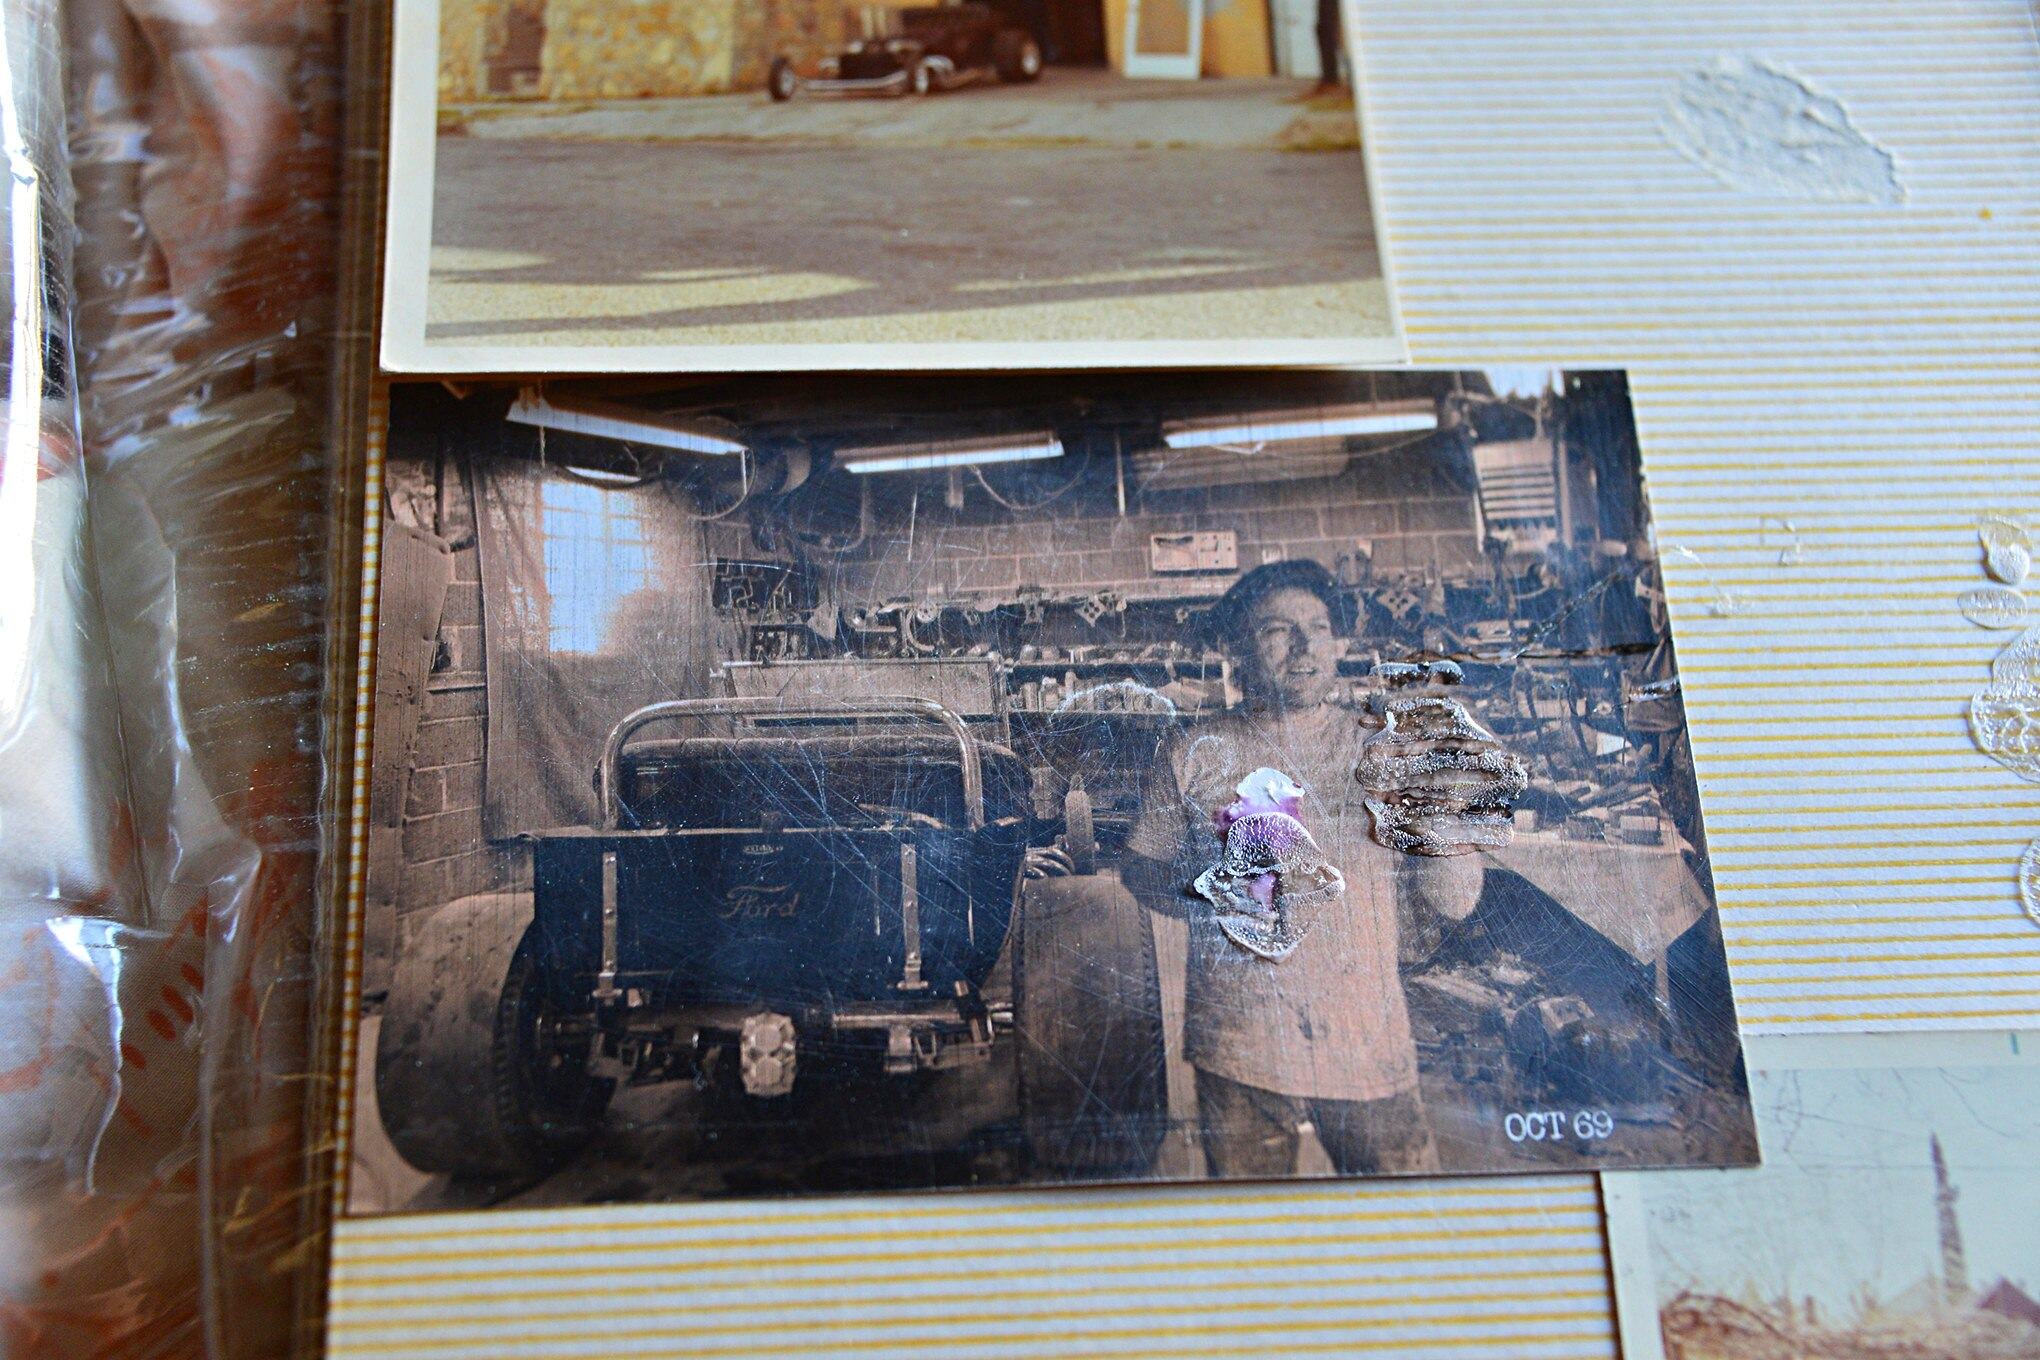 We found this damaged photo of Von Dutch in an album in Gary's garage apartment. The date on the print is October 1969, probably the processing time, not the actual date the photo was taken, which would have been in the summer of 1969.